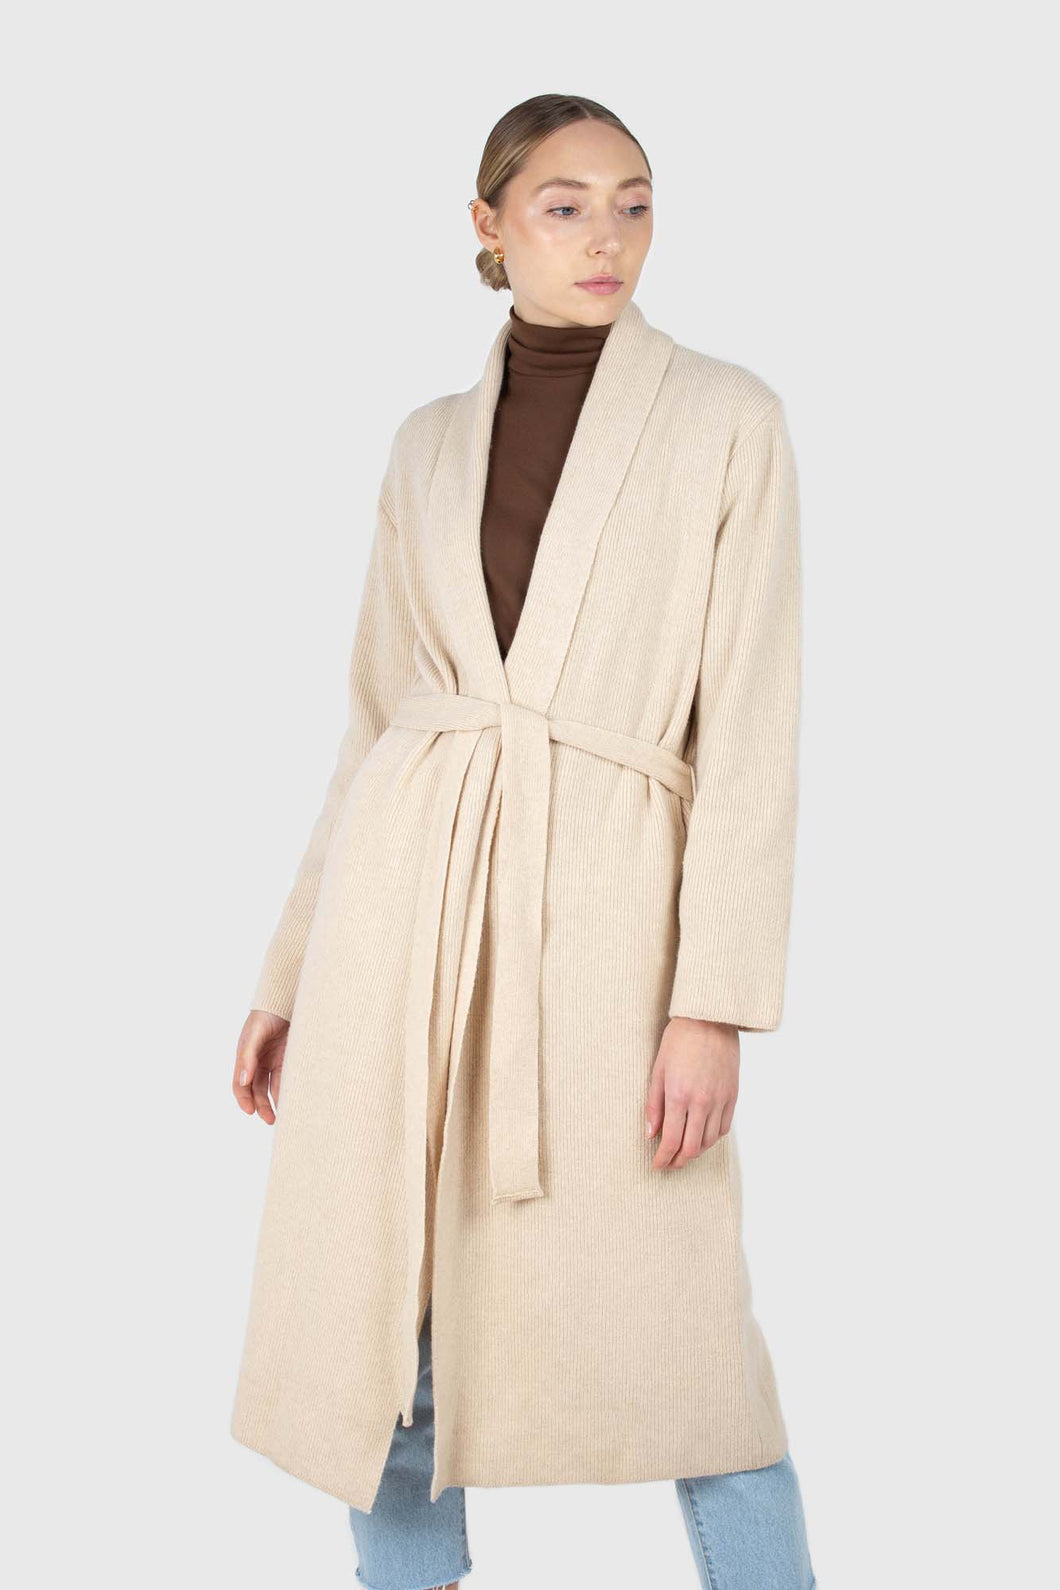 Beige wool blend extra long cardigan1